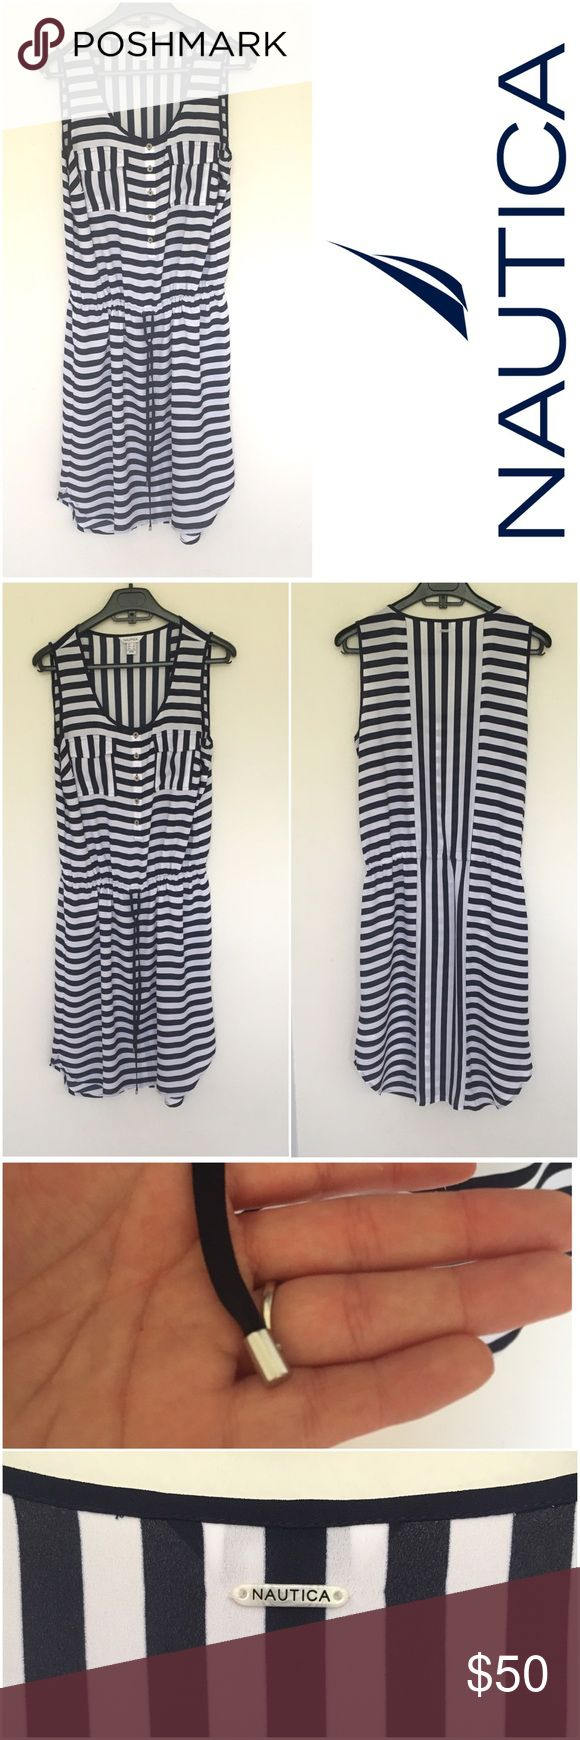 Nautica Stripe Dress ⛵️ NWT Nice summer dress with nautical stripes ⚓️. 100% polyester. ⛵️ Elastic at the waist and draw string to adjust it. A little longer at the back. Wear it with sandals or high heels. Make me an offer. No trades. Nautica Dresses